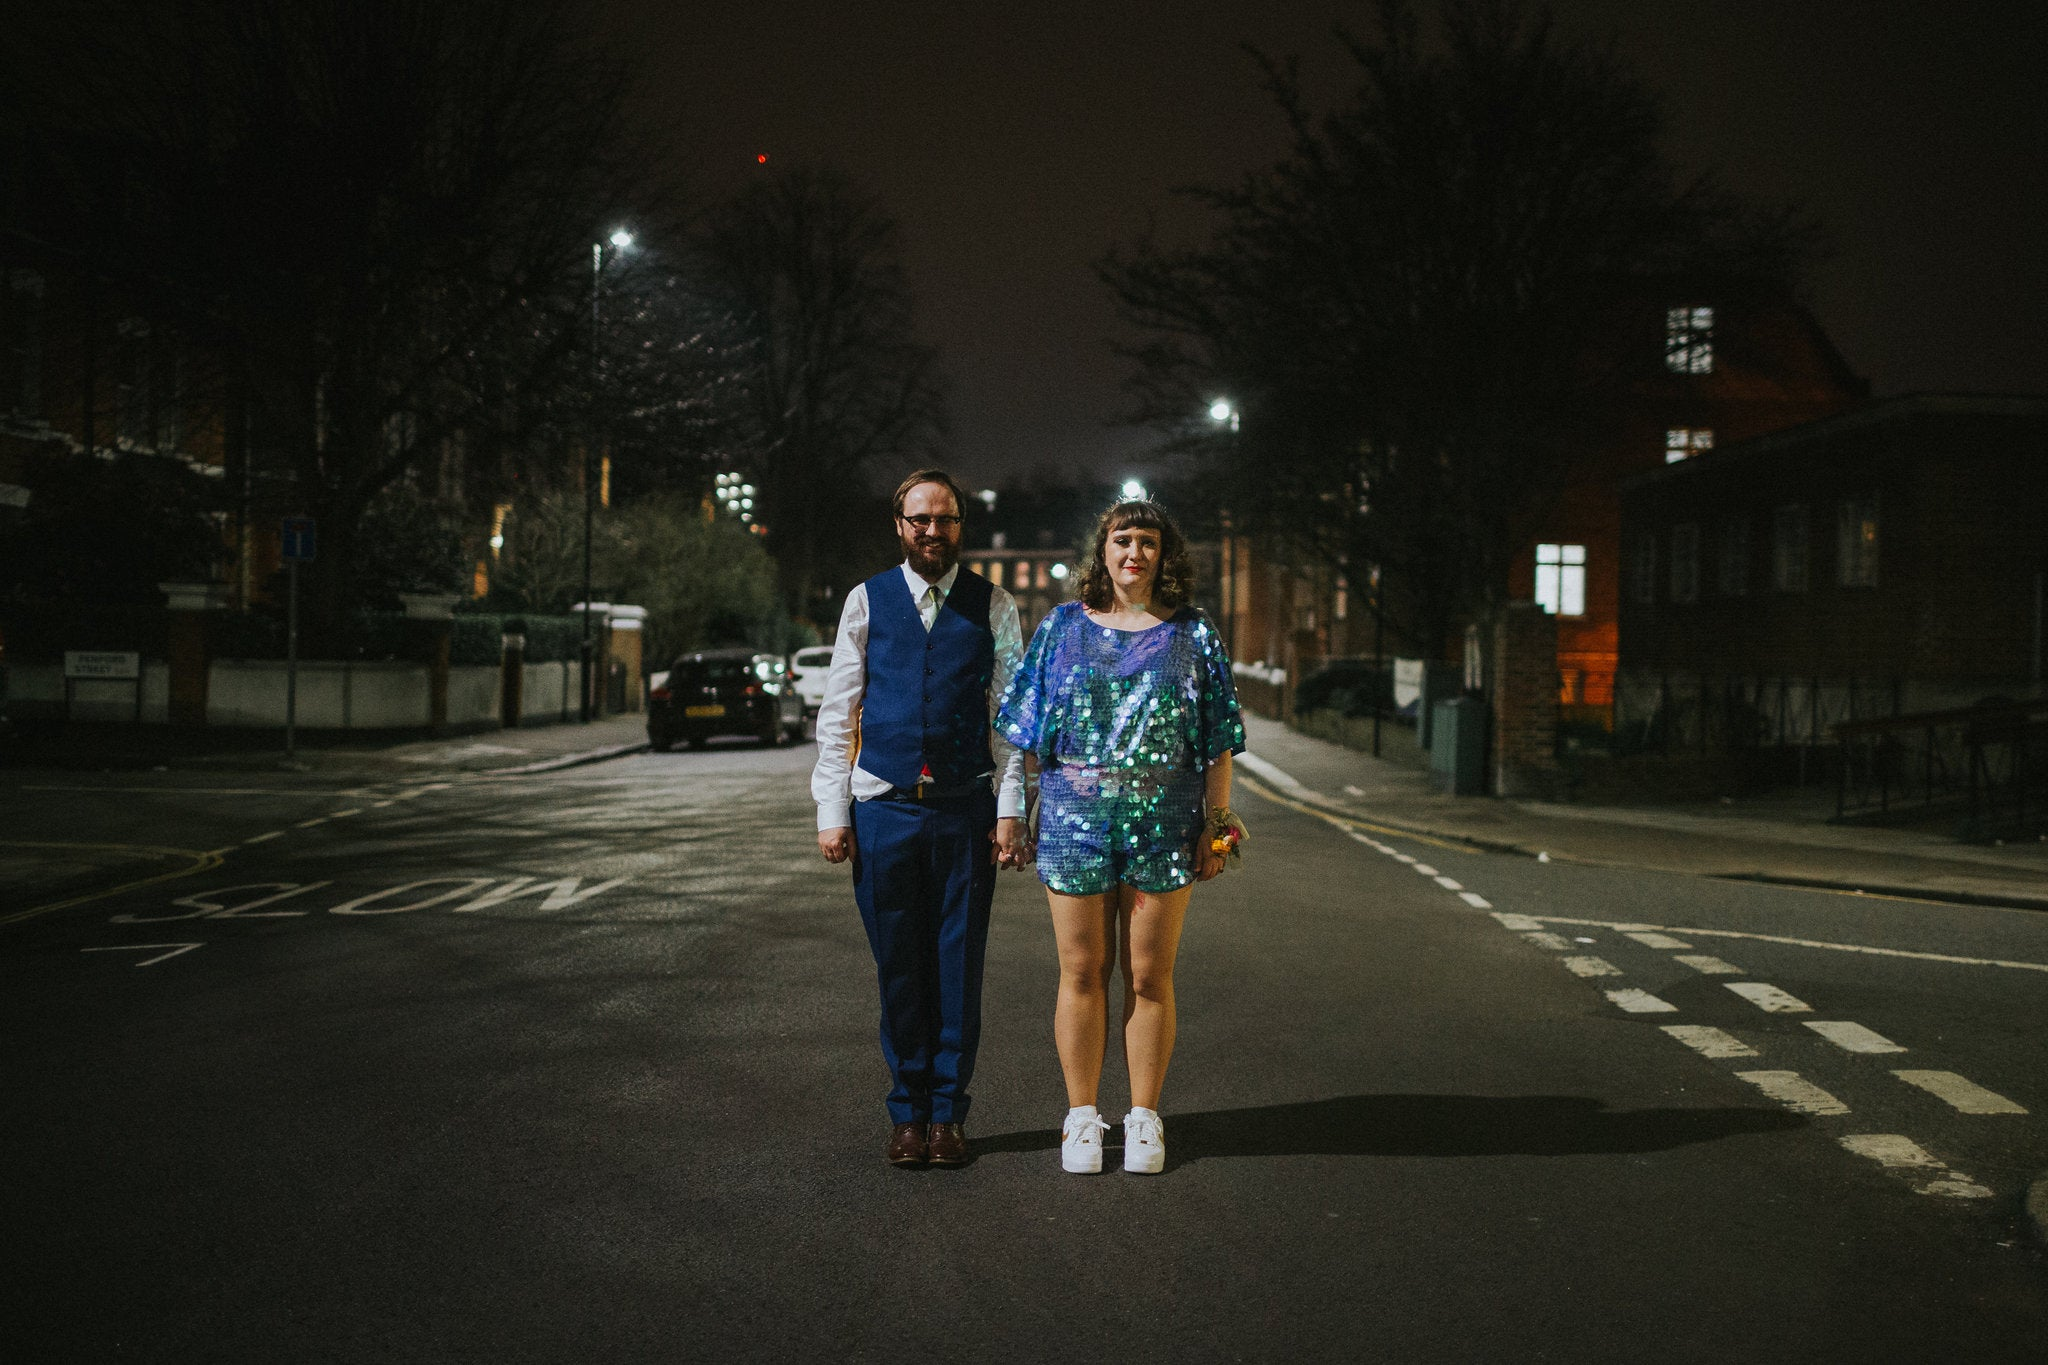 A bride wearing a blue sequin romper stands with her husband at night in a city street.